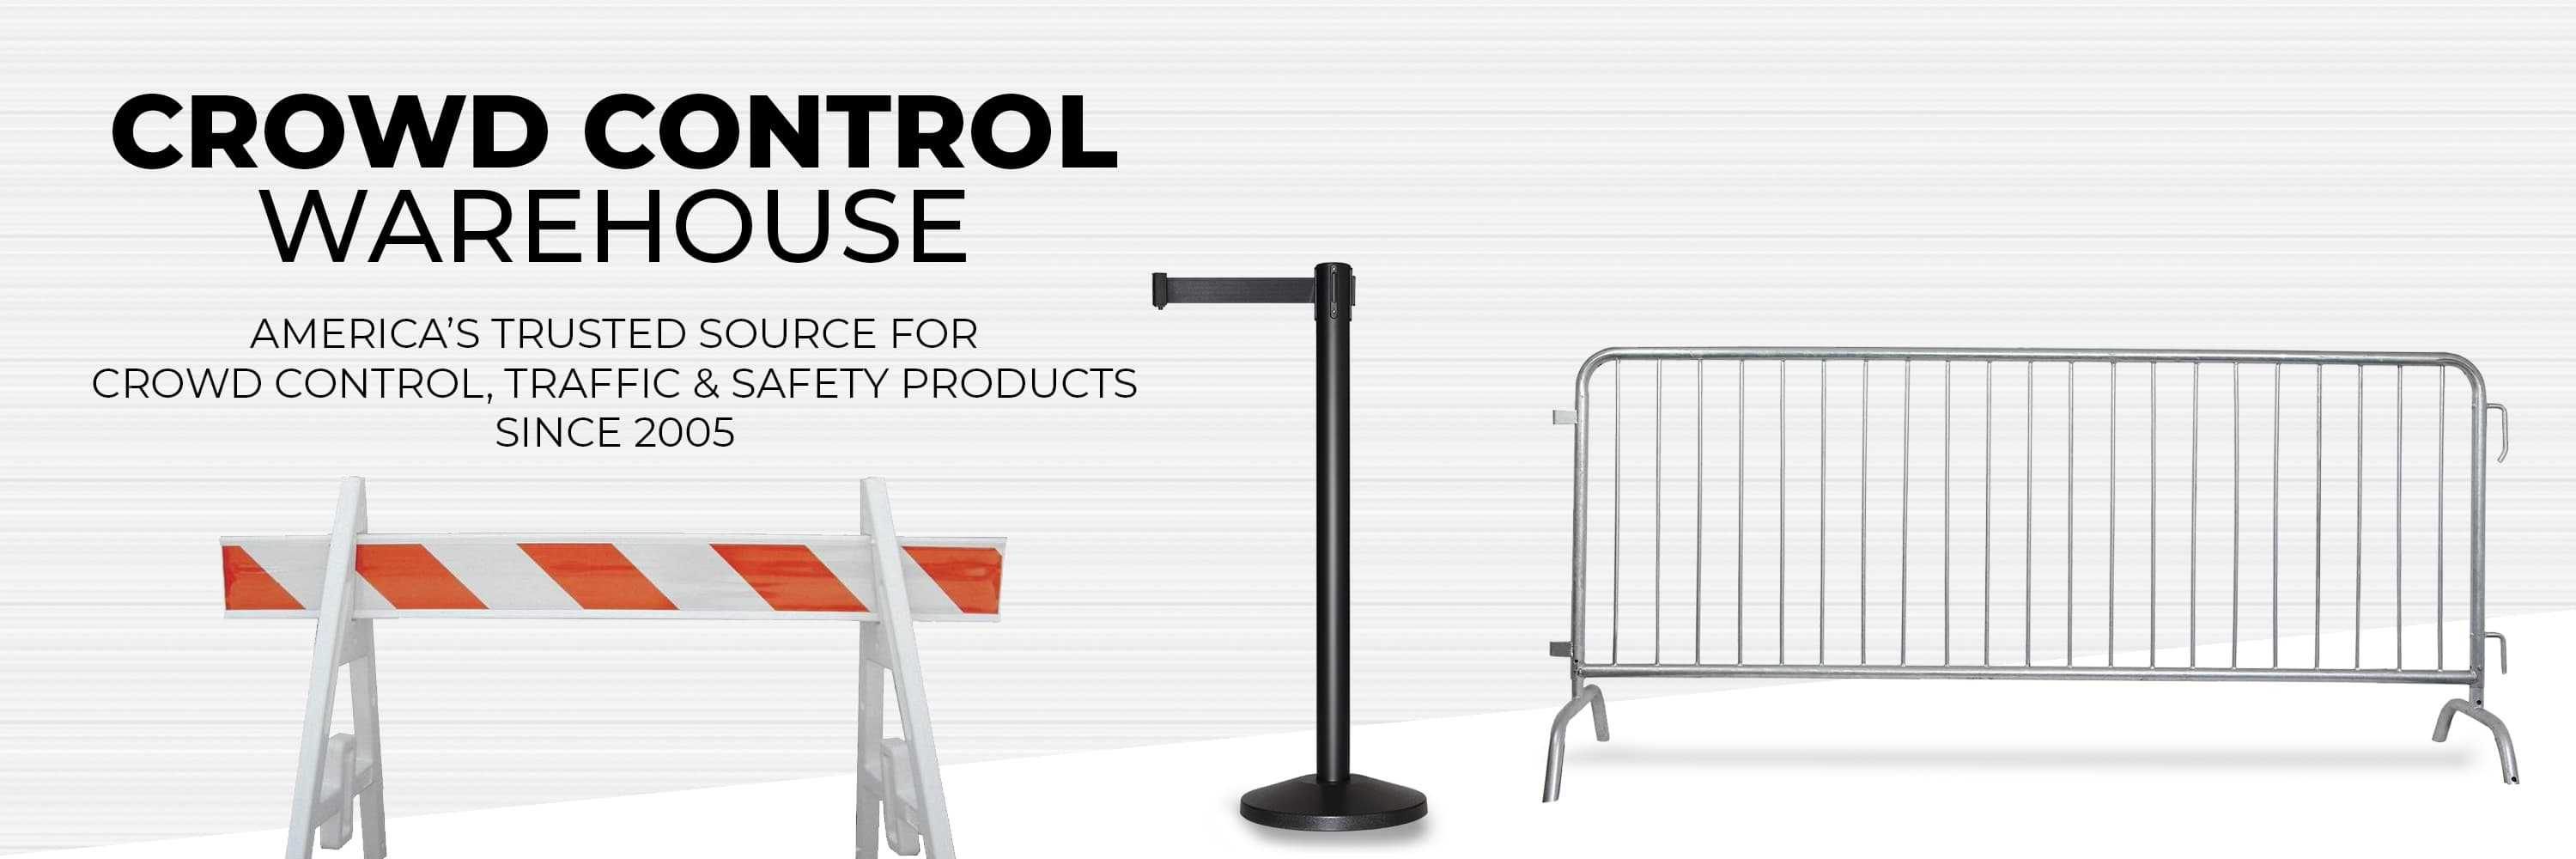 Crowd Control Warehouse | Belt Barriers, Stanchions & Barricades